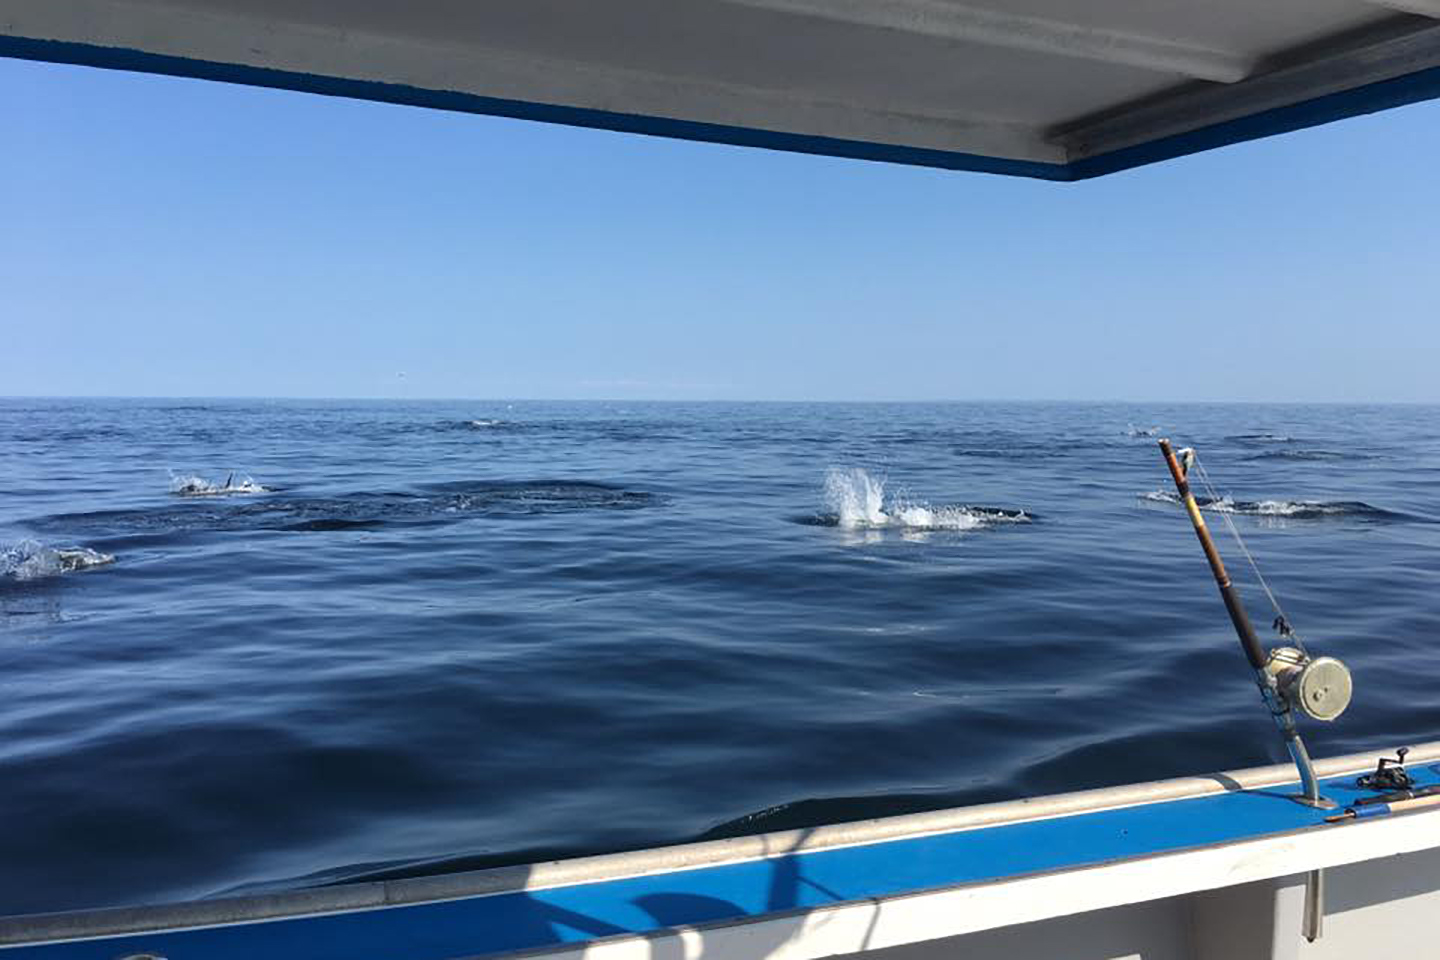 A view from a boat on the sea of Bluefin Tuna playing and feeding on the surface of the water